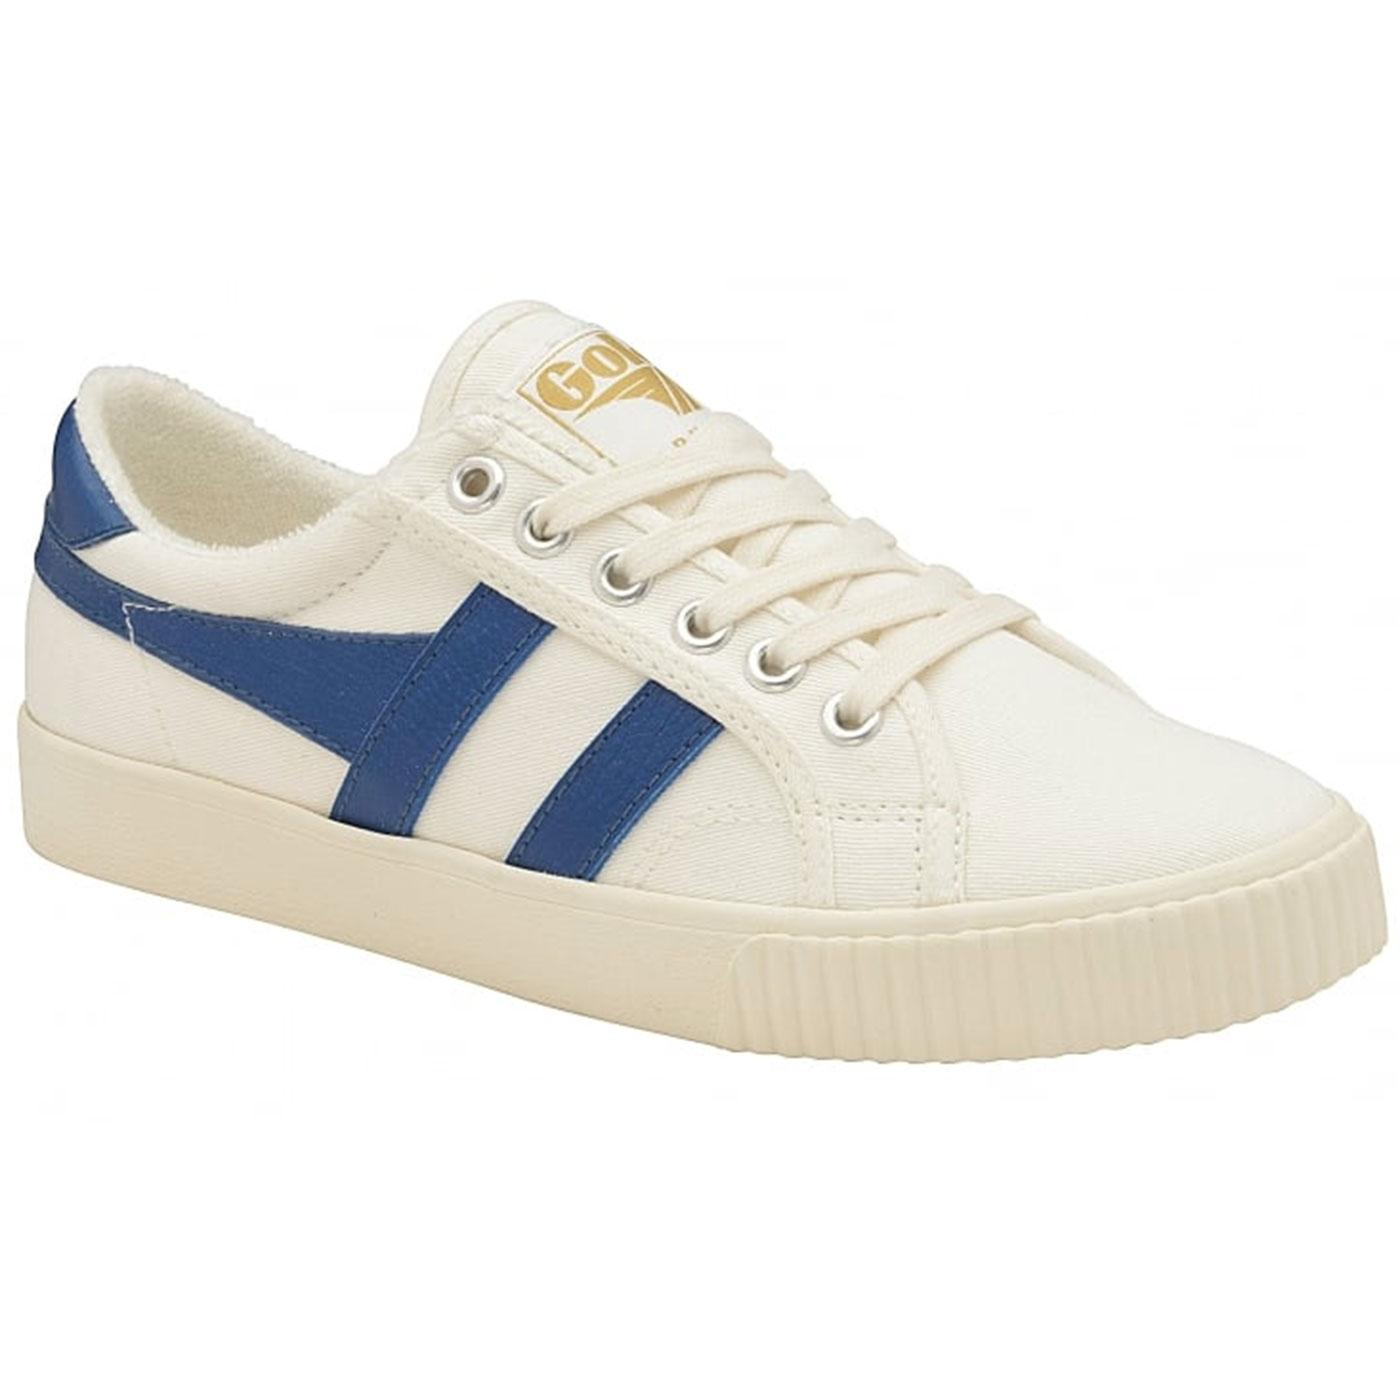 GOLA Mark Cox Womens Retro 70s Tennis Trainers W/B